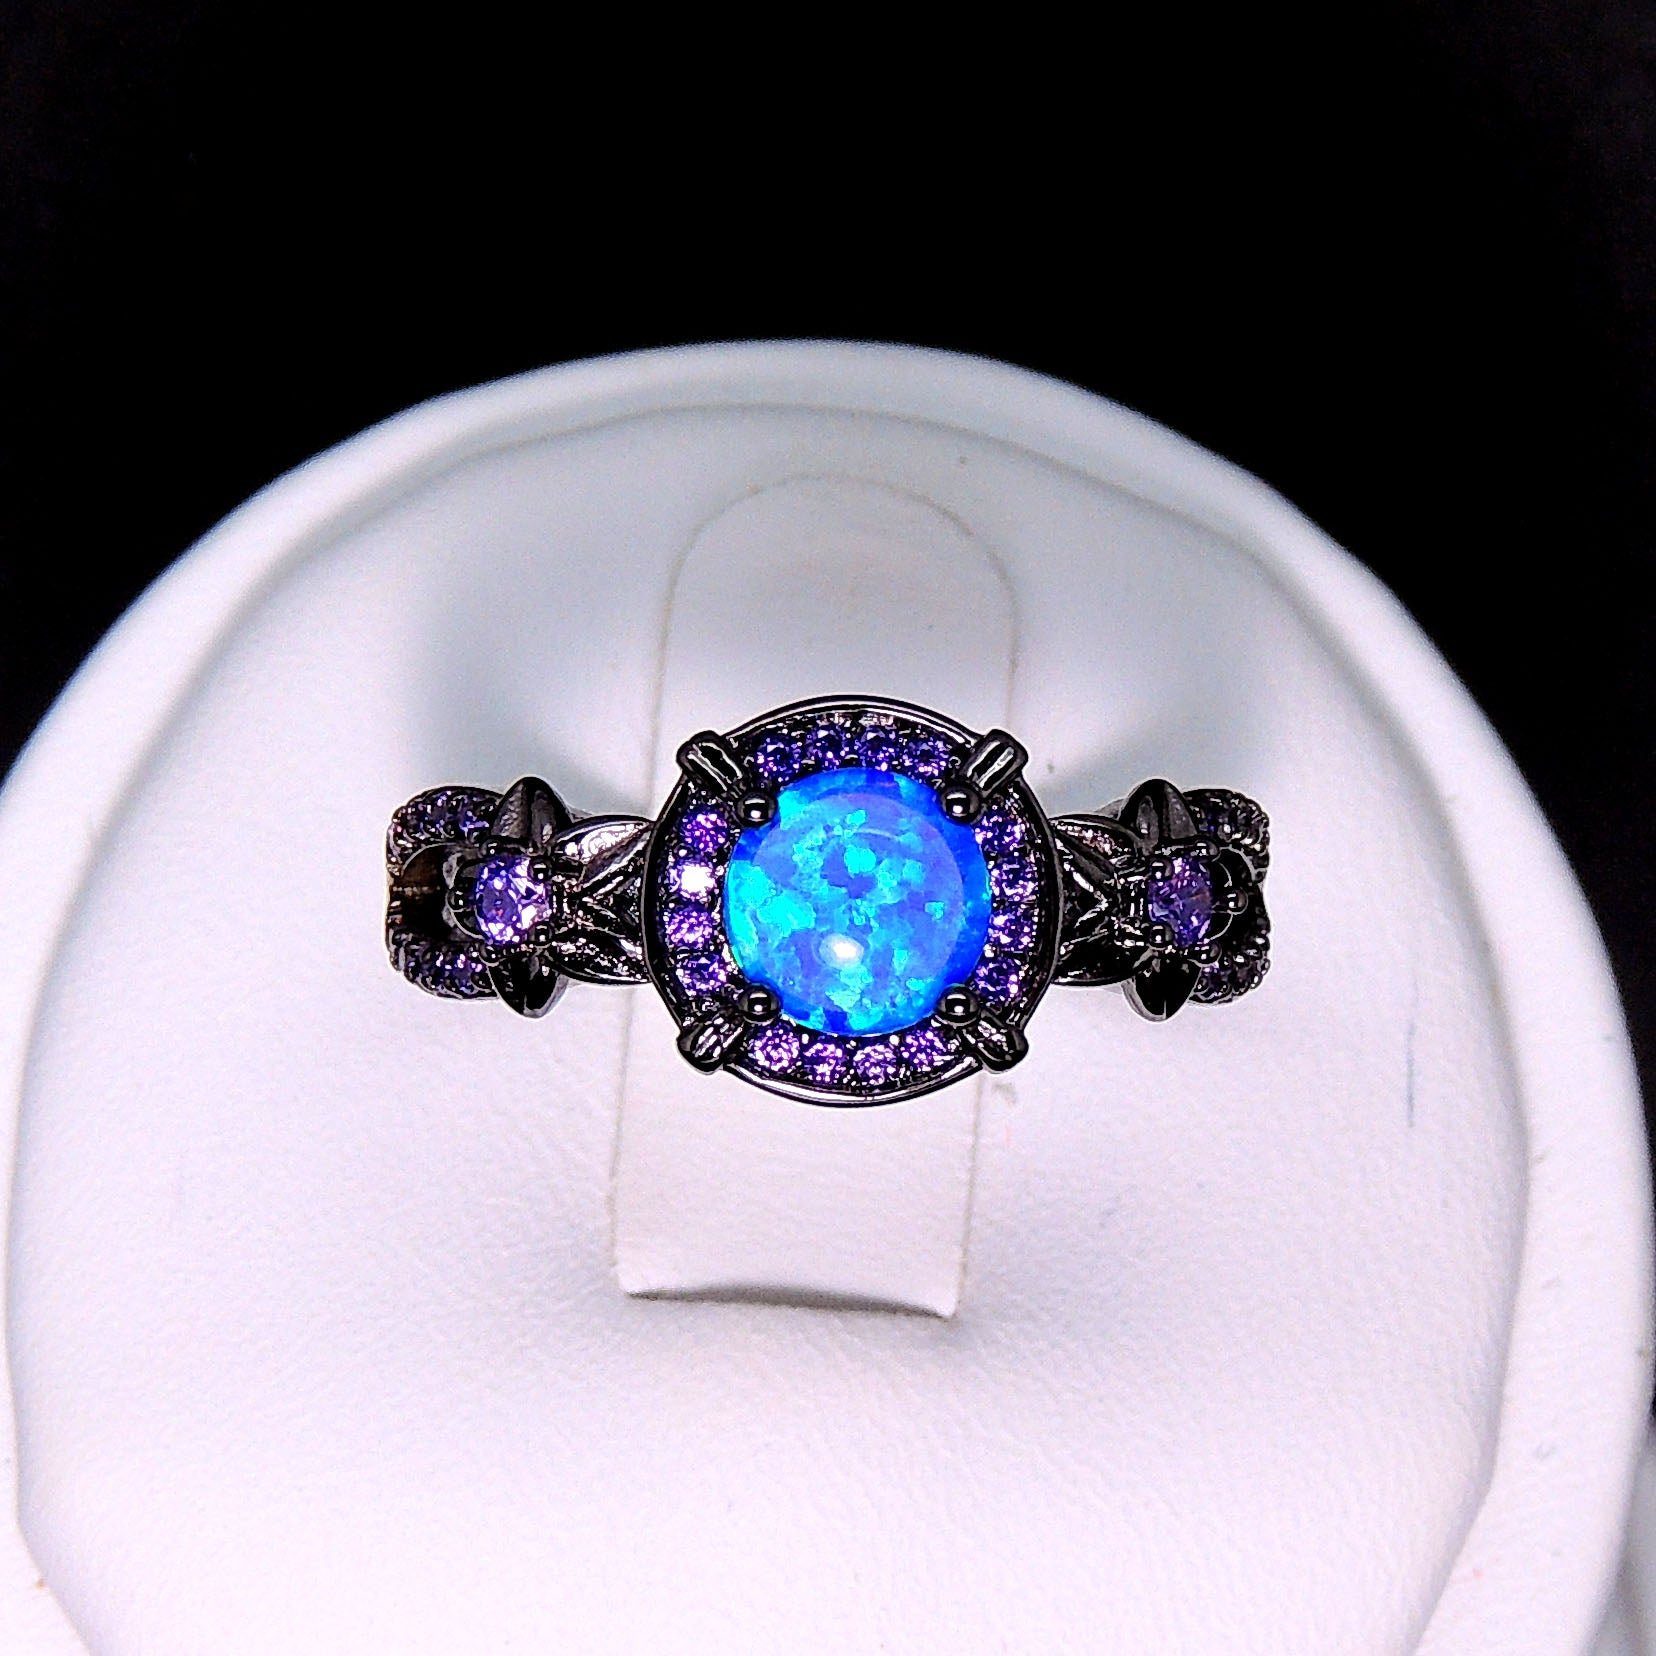 Sloane Engagement Ring Statement Cocktail By Ginger Lyne Black Plated Simulated Fire Opal Stone Blue or Pink/Purple Fashion Jewelry For Women